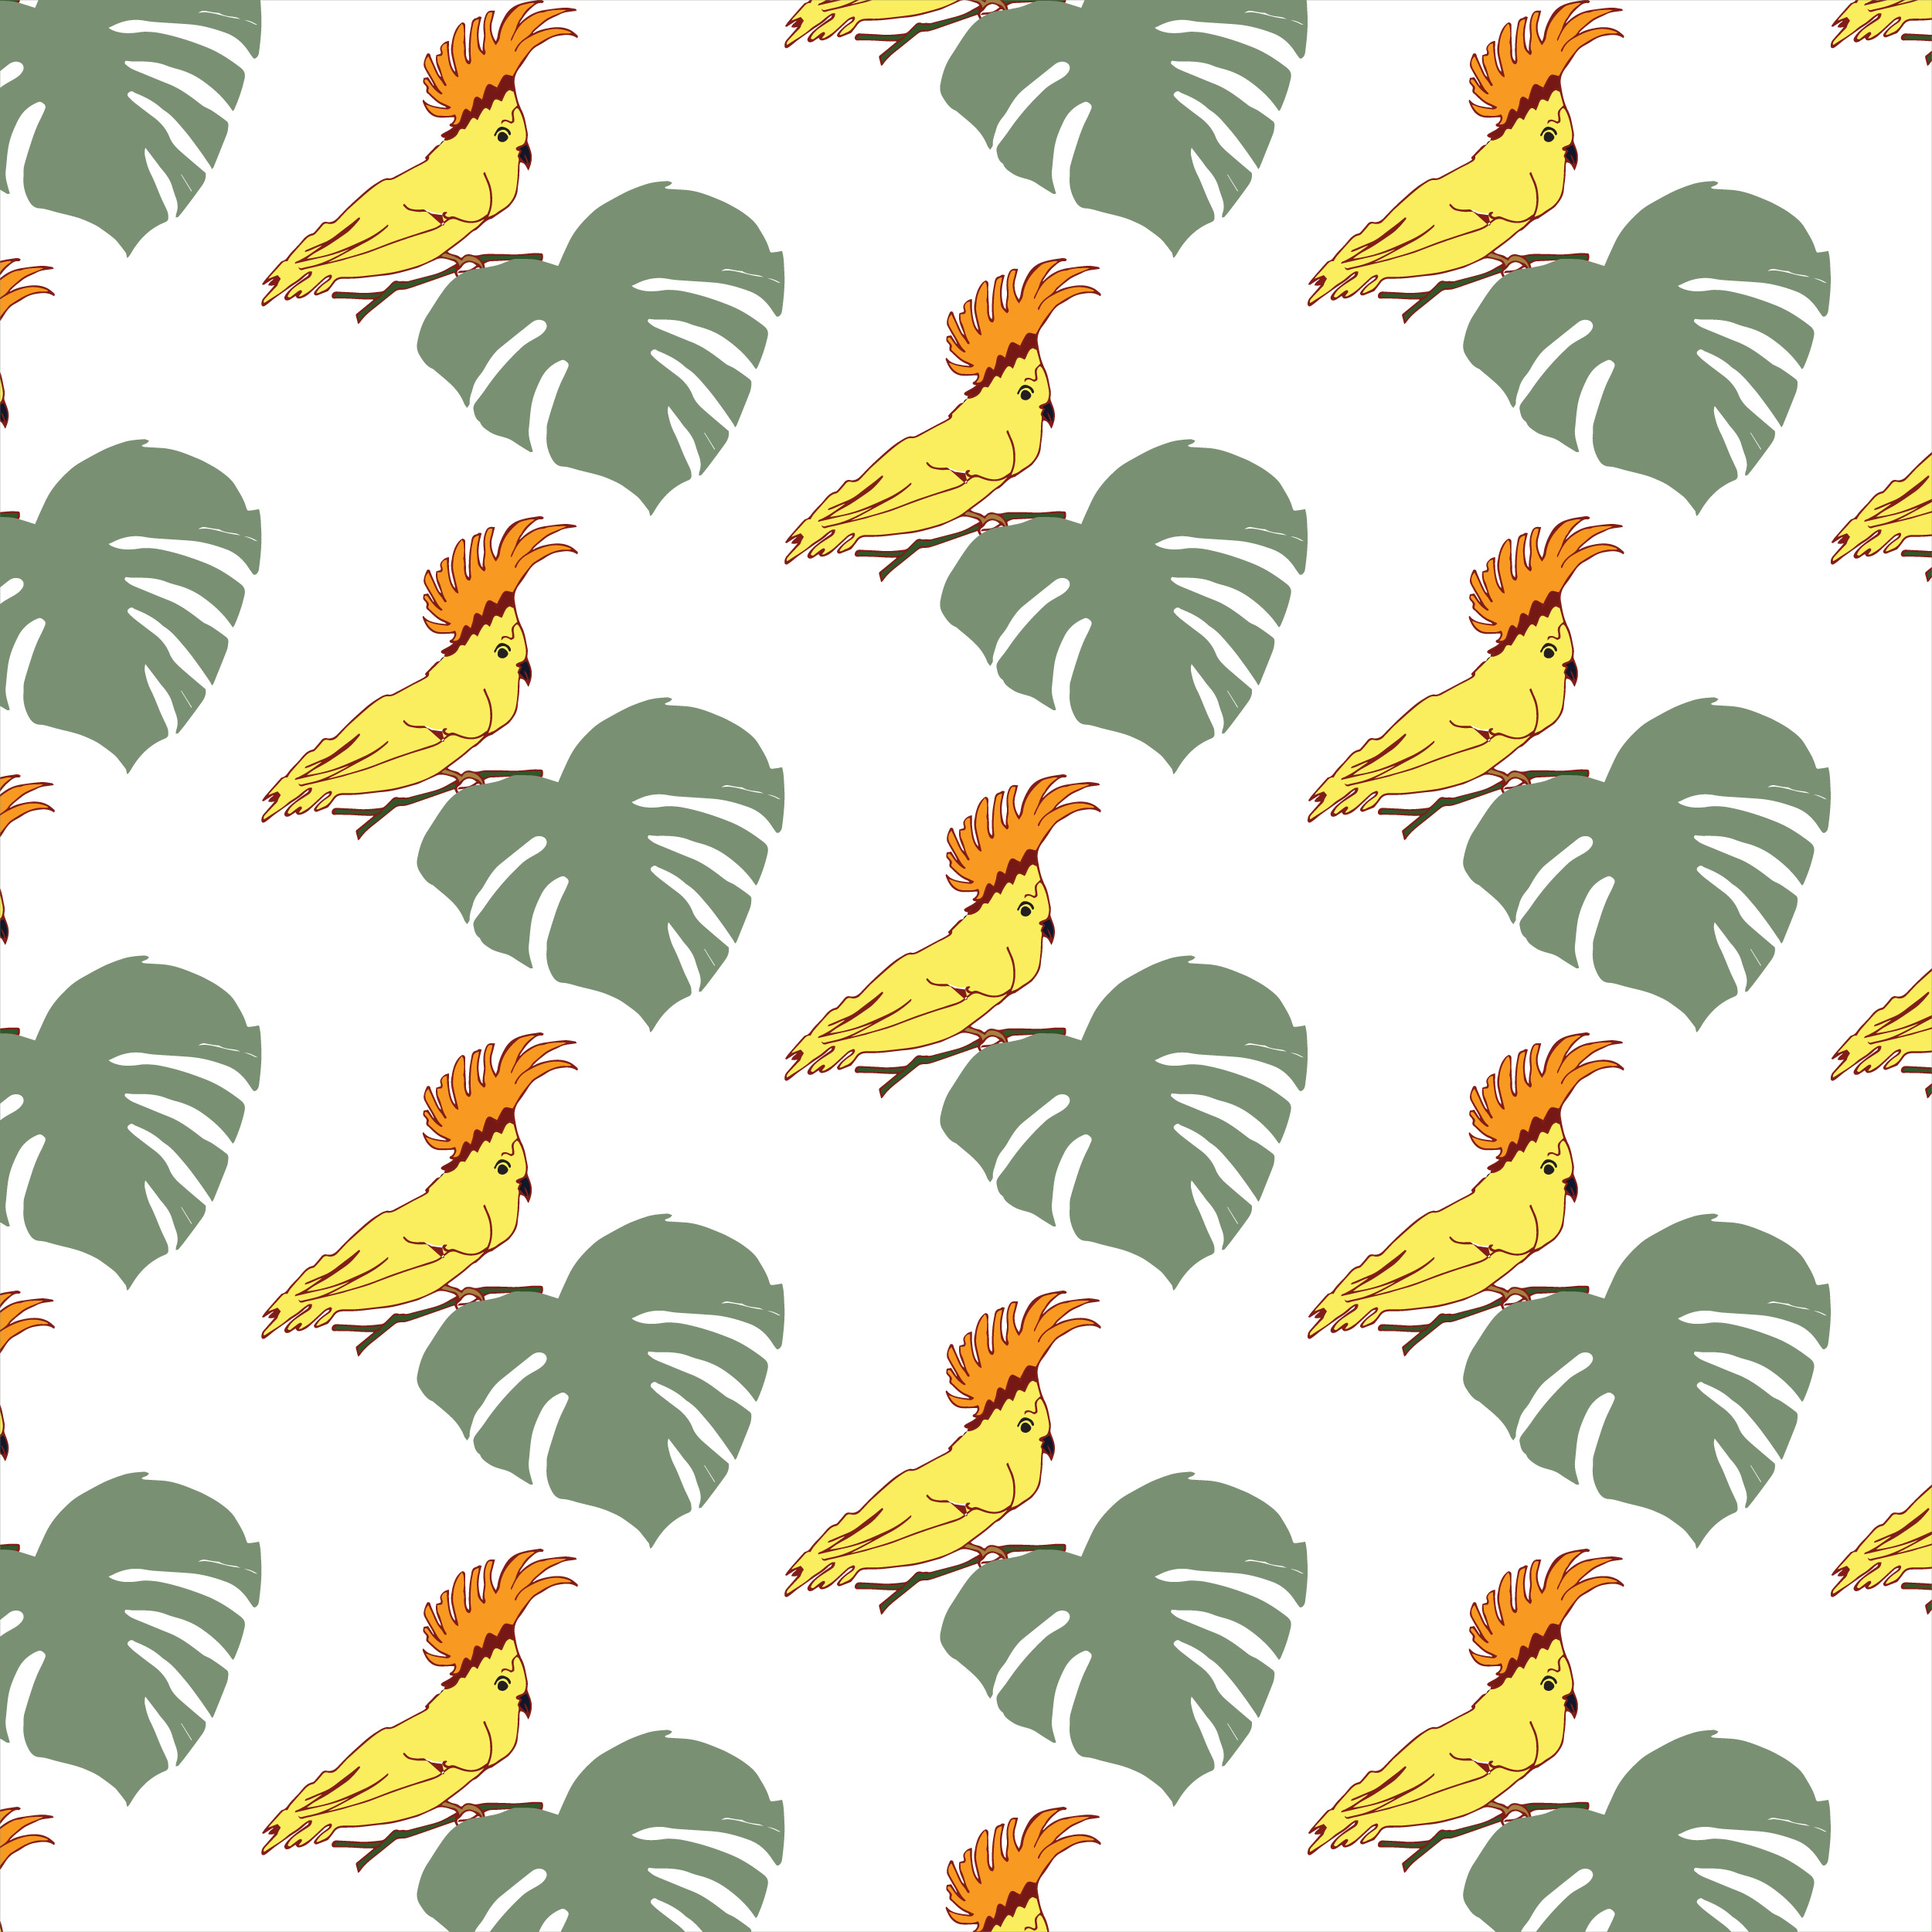 Fantasy Patterns with Birds example image 3